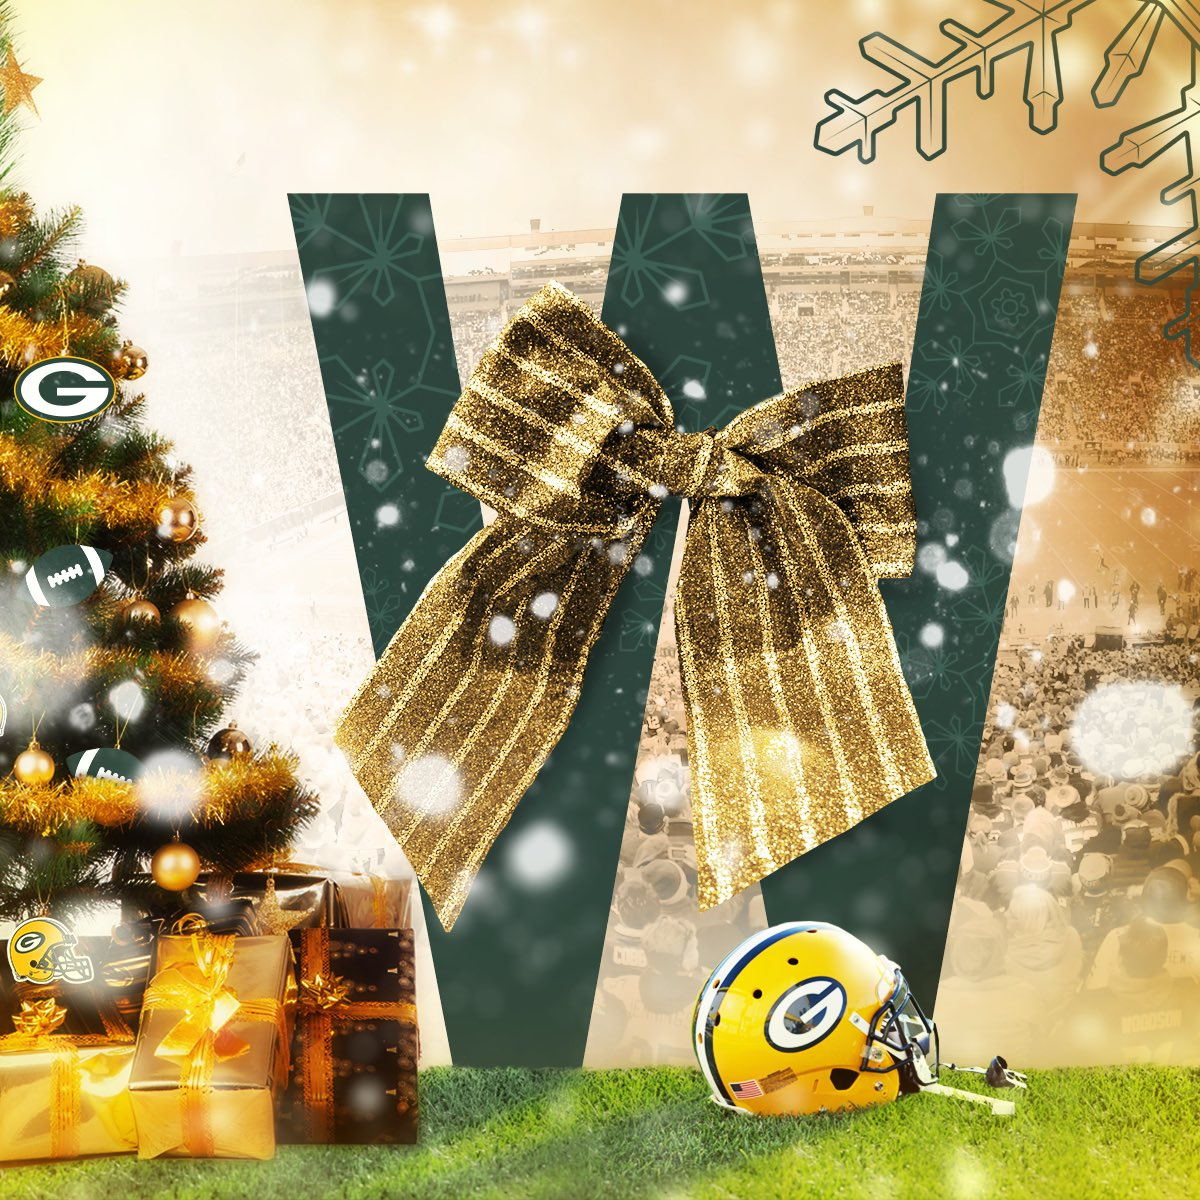 Christmas Morning is that much better when you get a big W! ���� #GoPackGo https://t.co/f52tgeA3GO